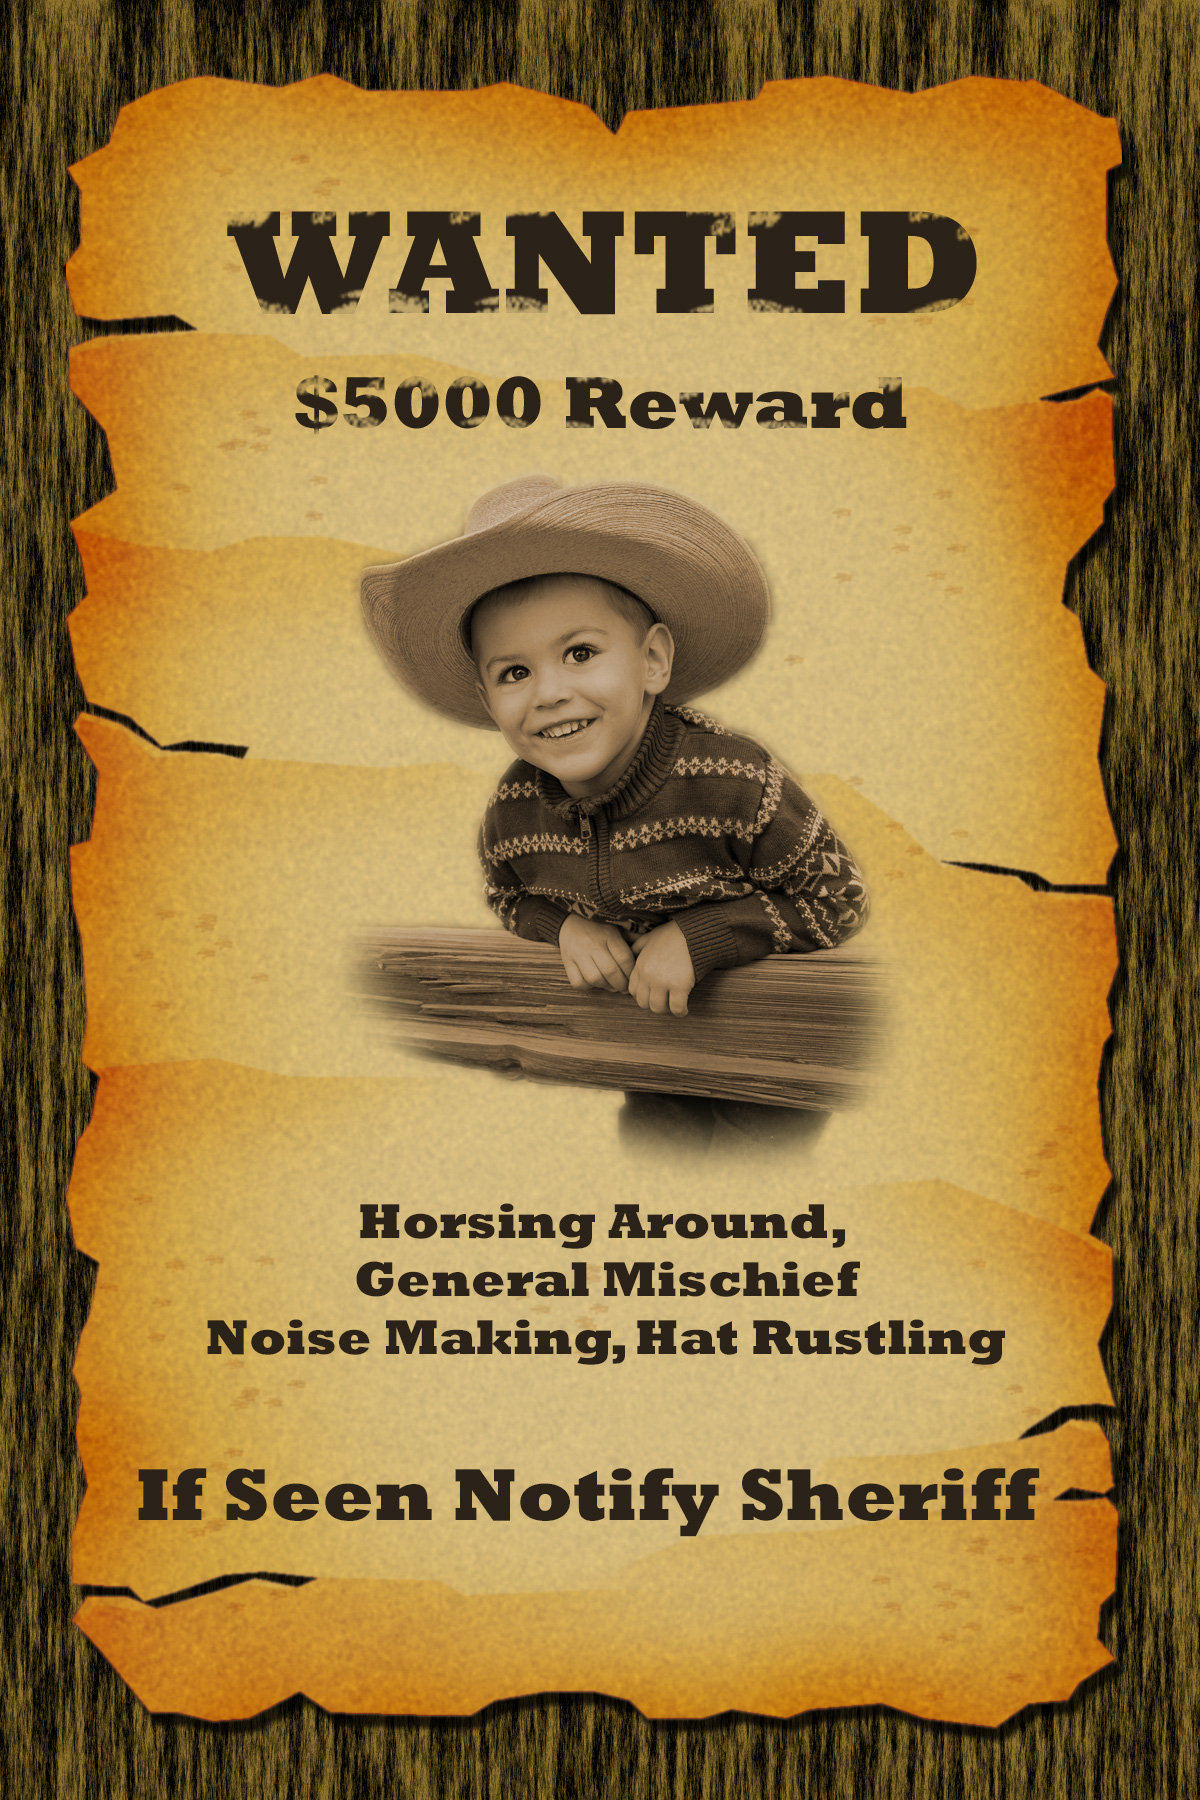 18 Funny Wanted Poster Templates   KittyBabyLove.com